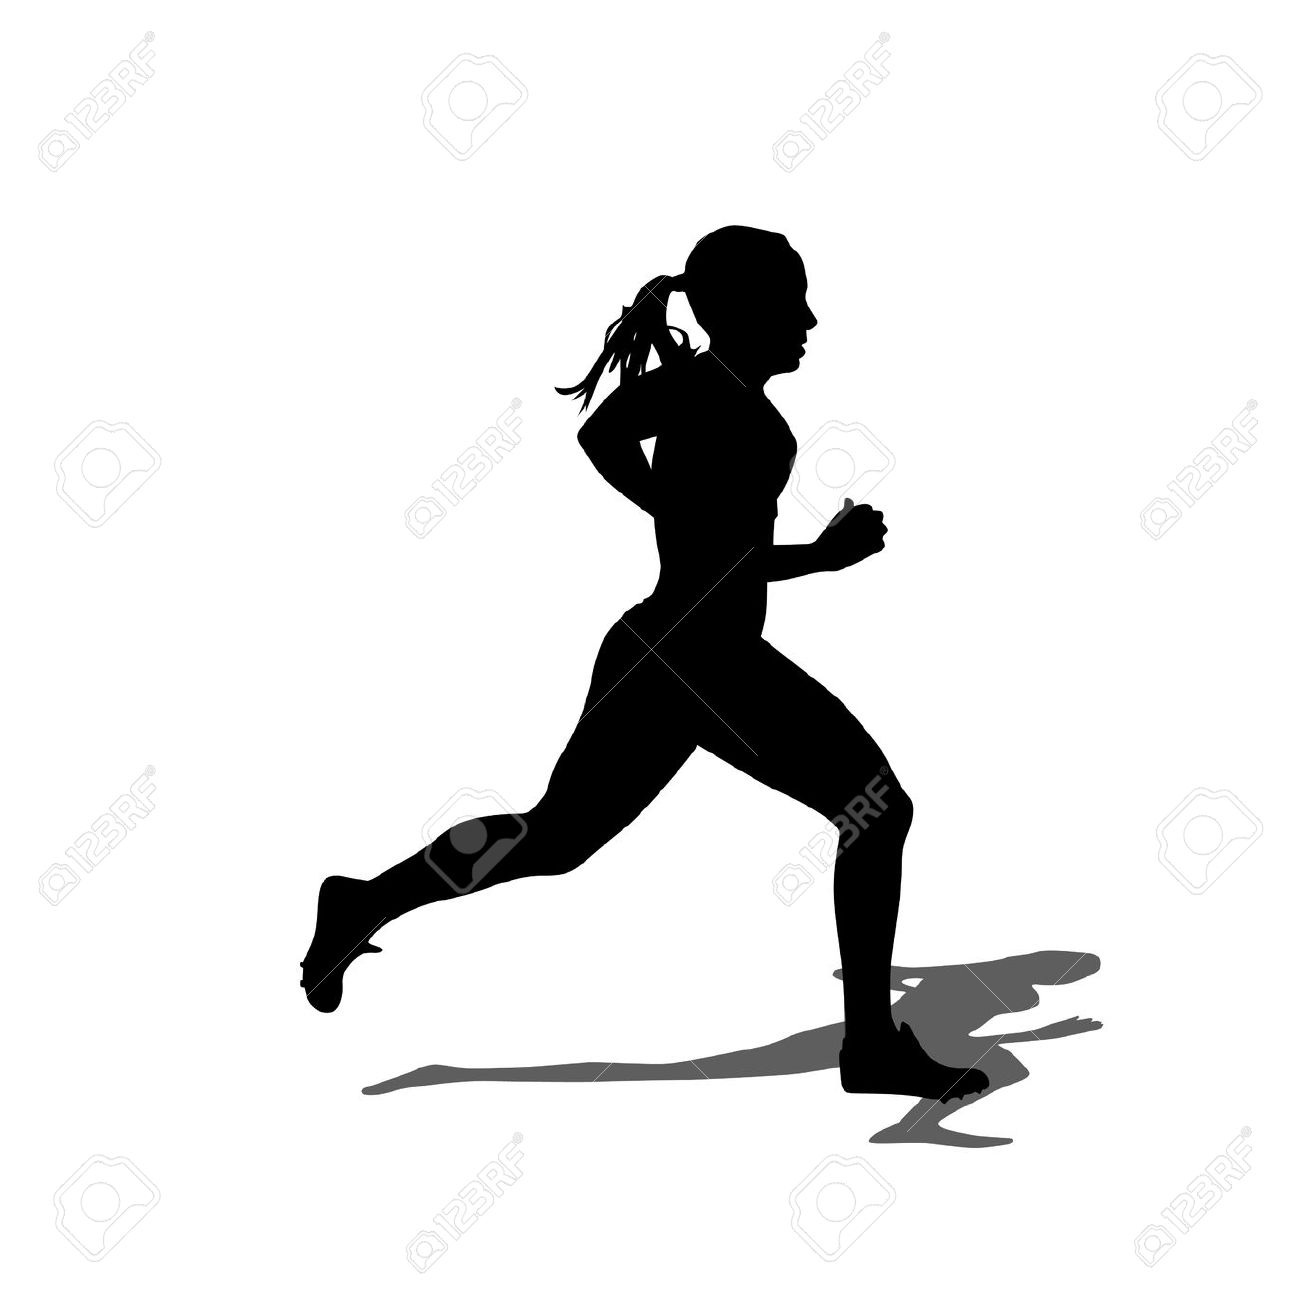 Girl running clipart black and white picture transparent stock Girl Running Clipart Black And White | Free download best Girl ... picture transparent stock